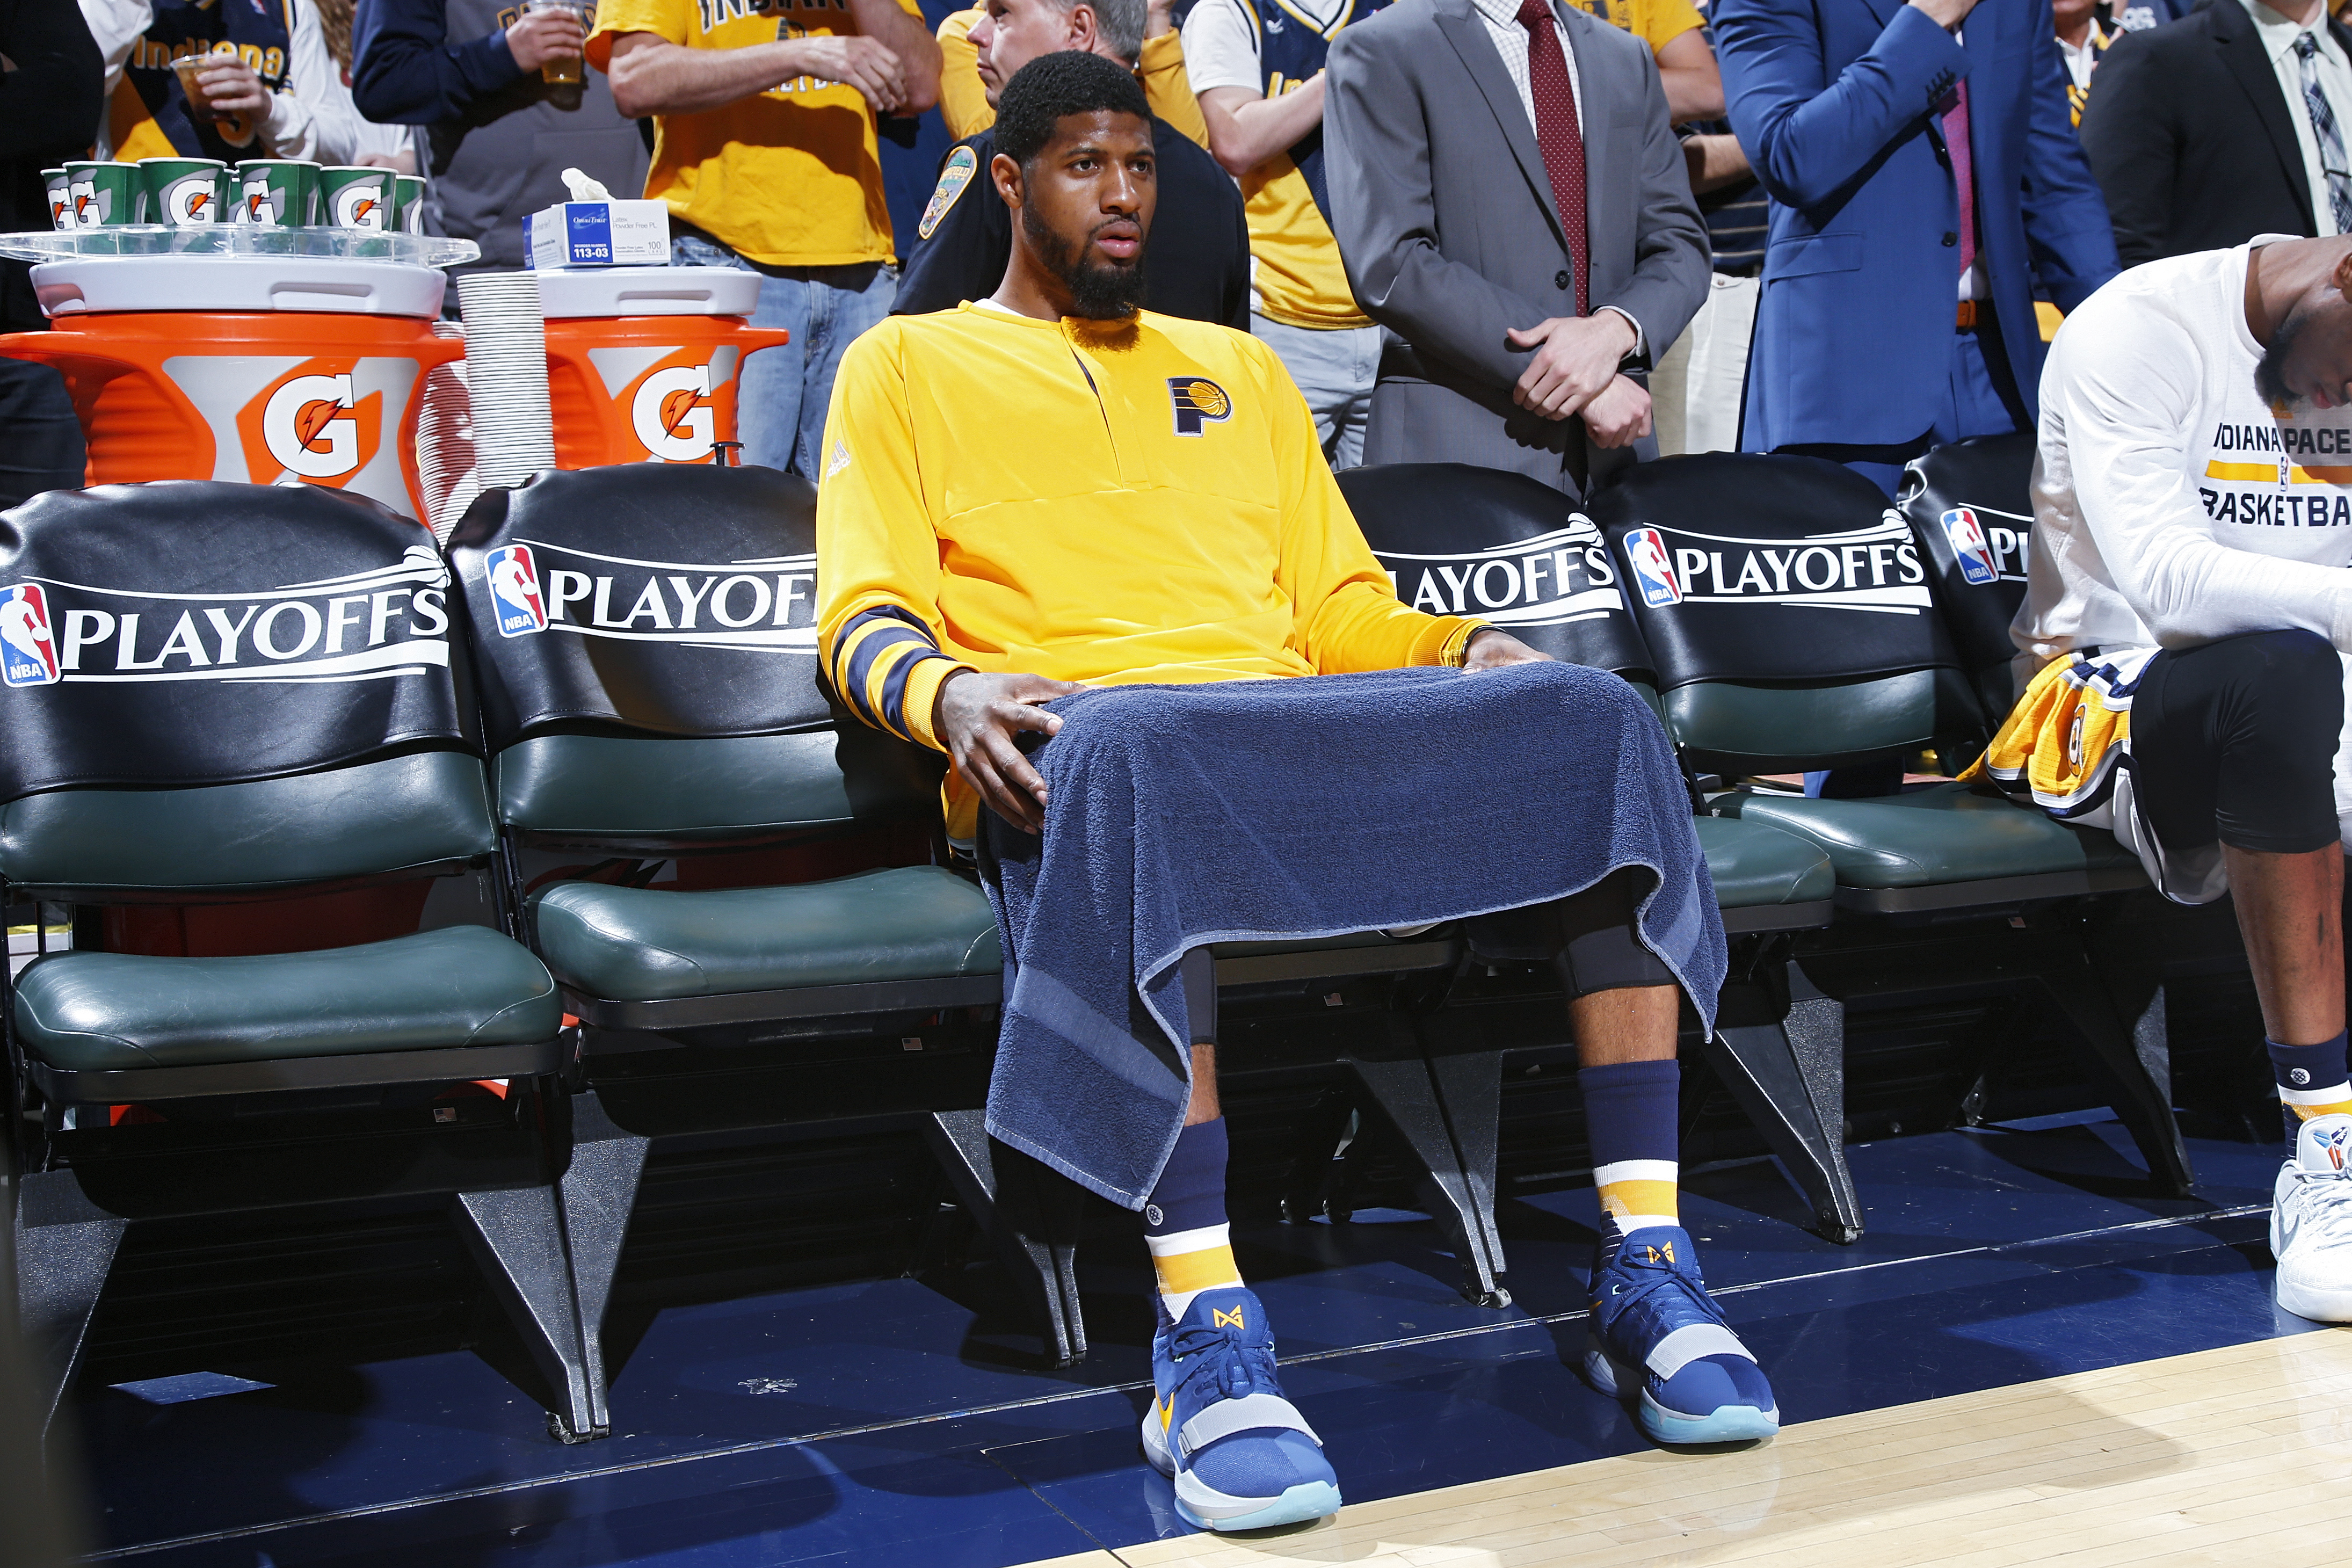 672751302-cleveland-cavaliers-v-indiana-pacers-game-four.jpg